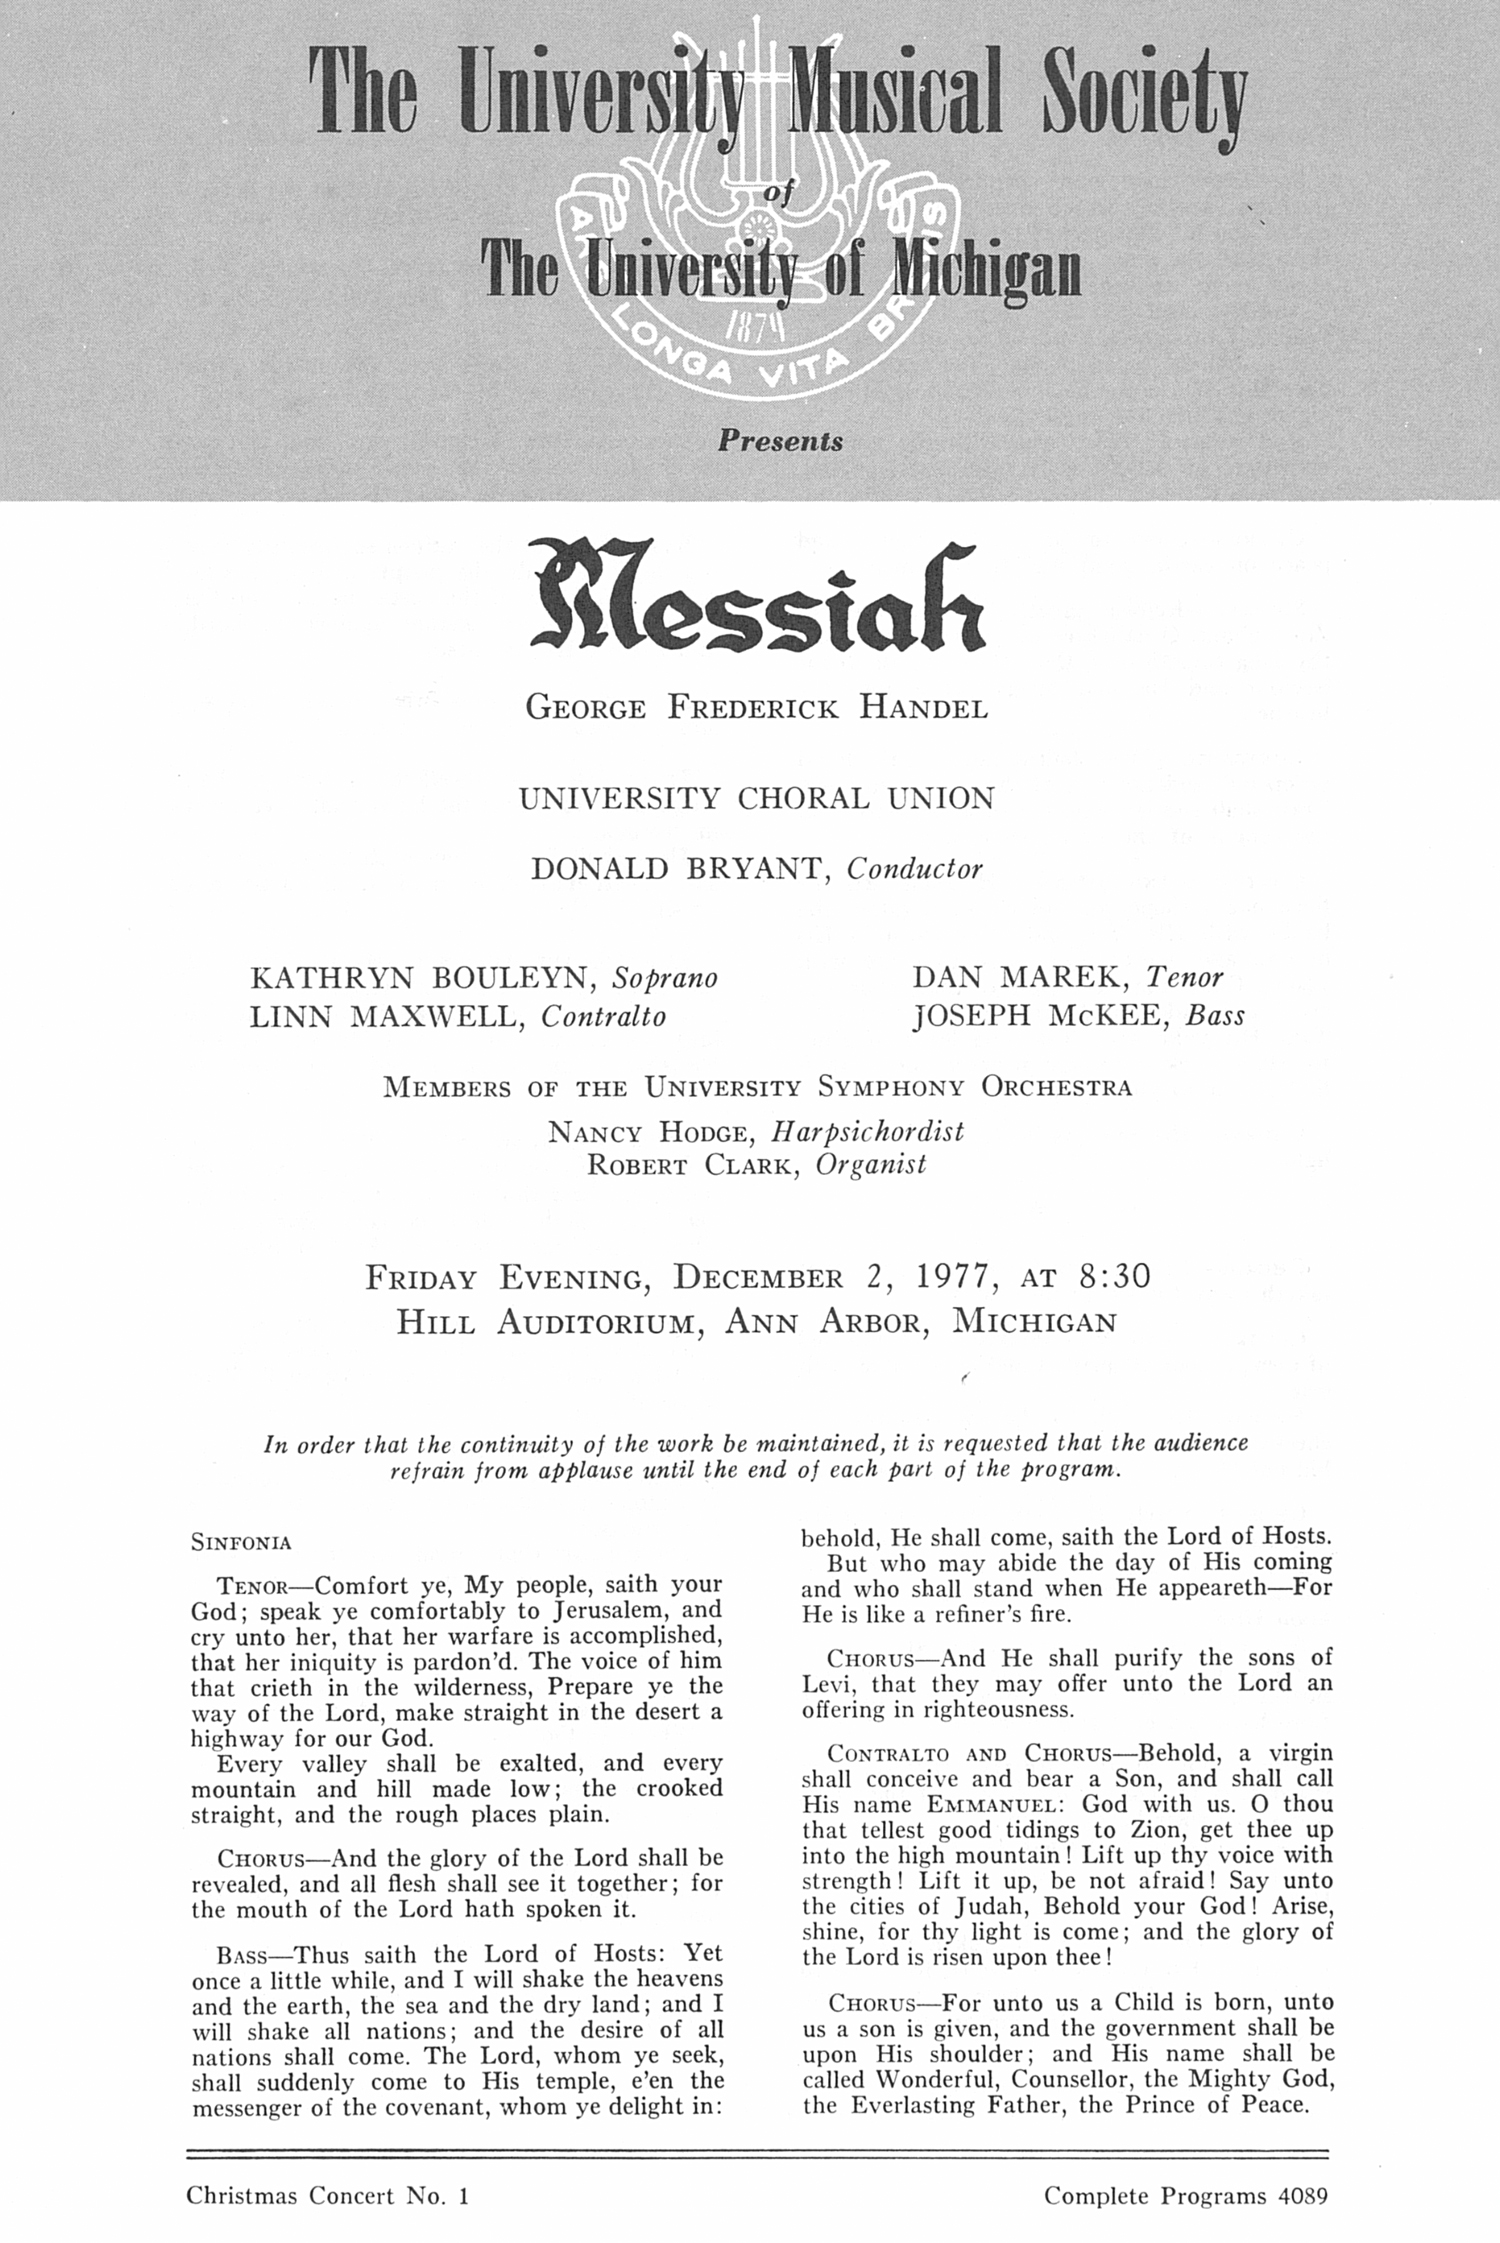 UMS Concert Program, December 2, 1977: Messiah -- George Frederick Handel image